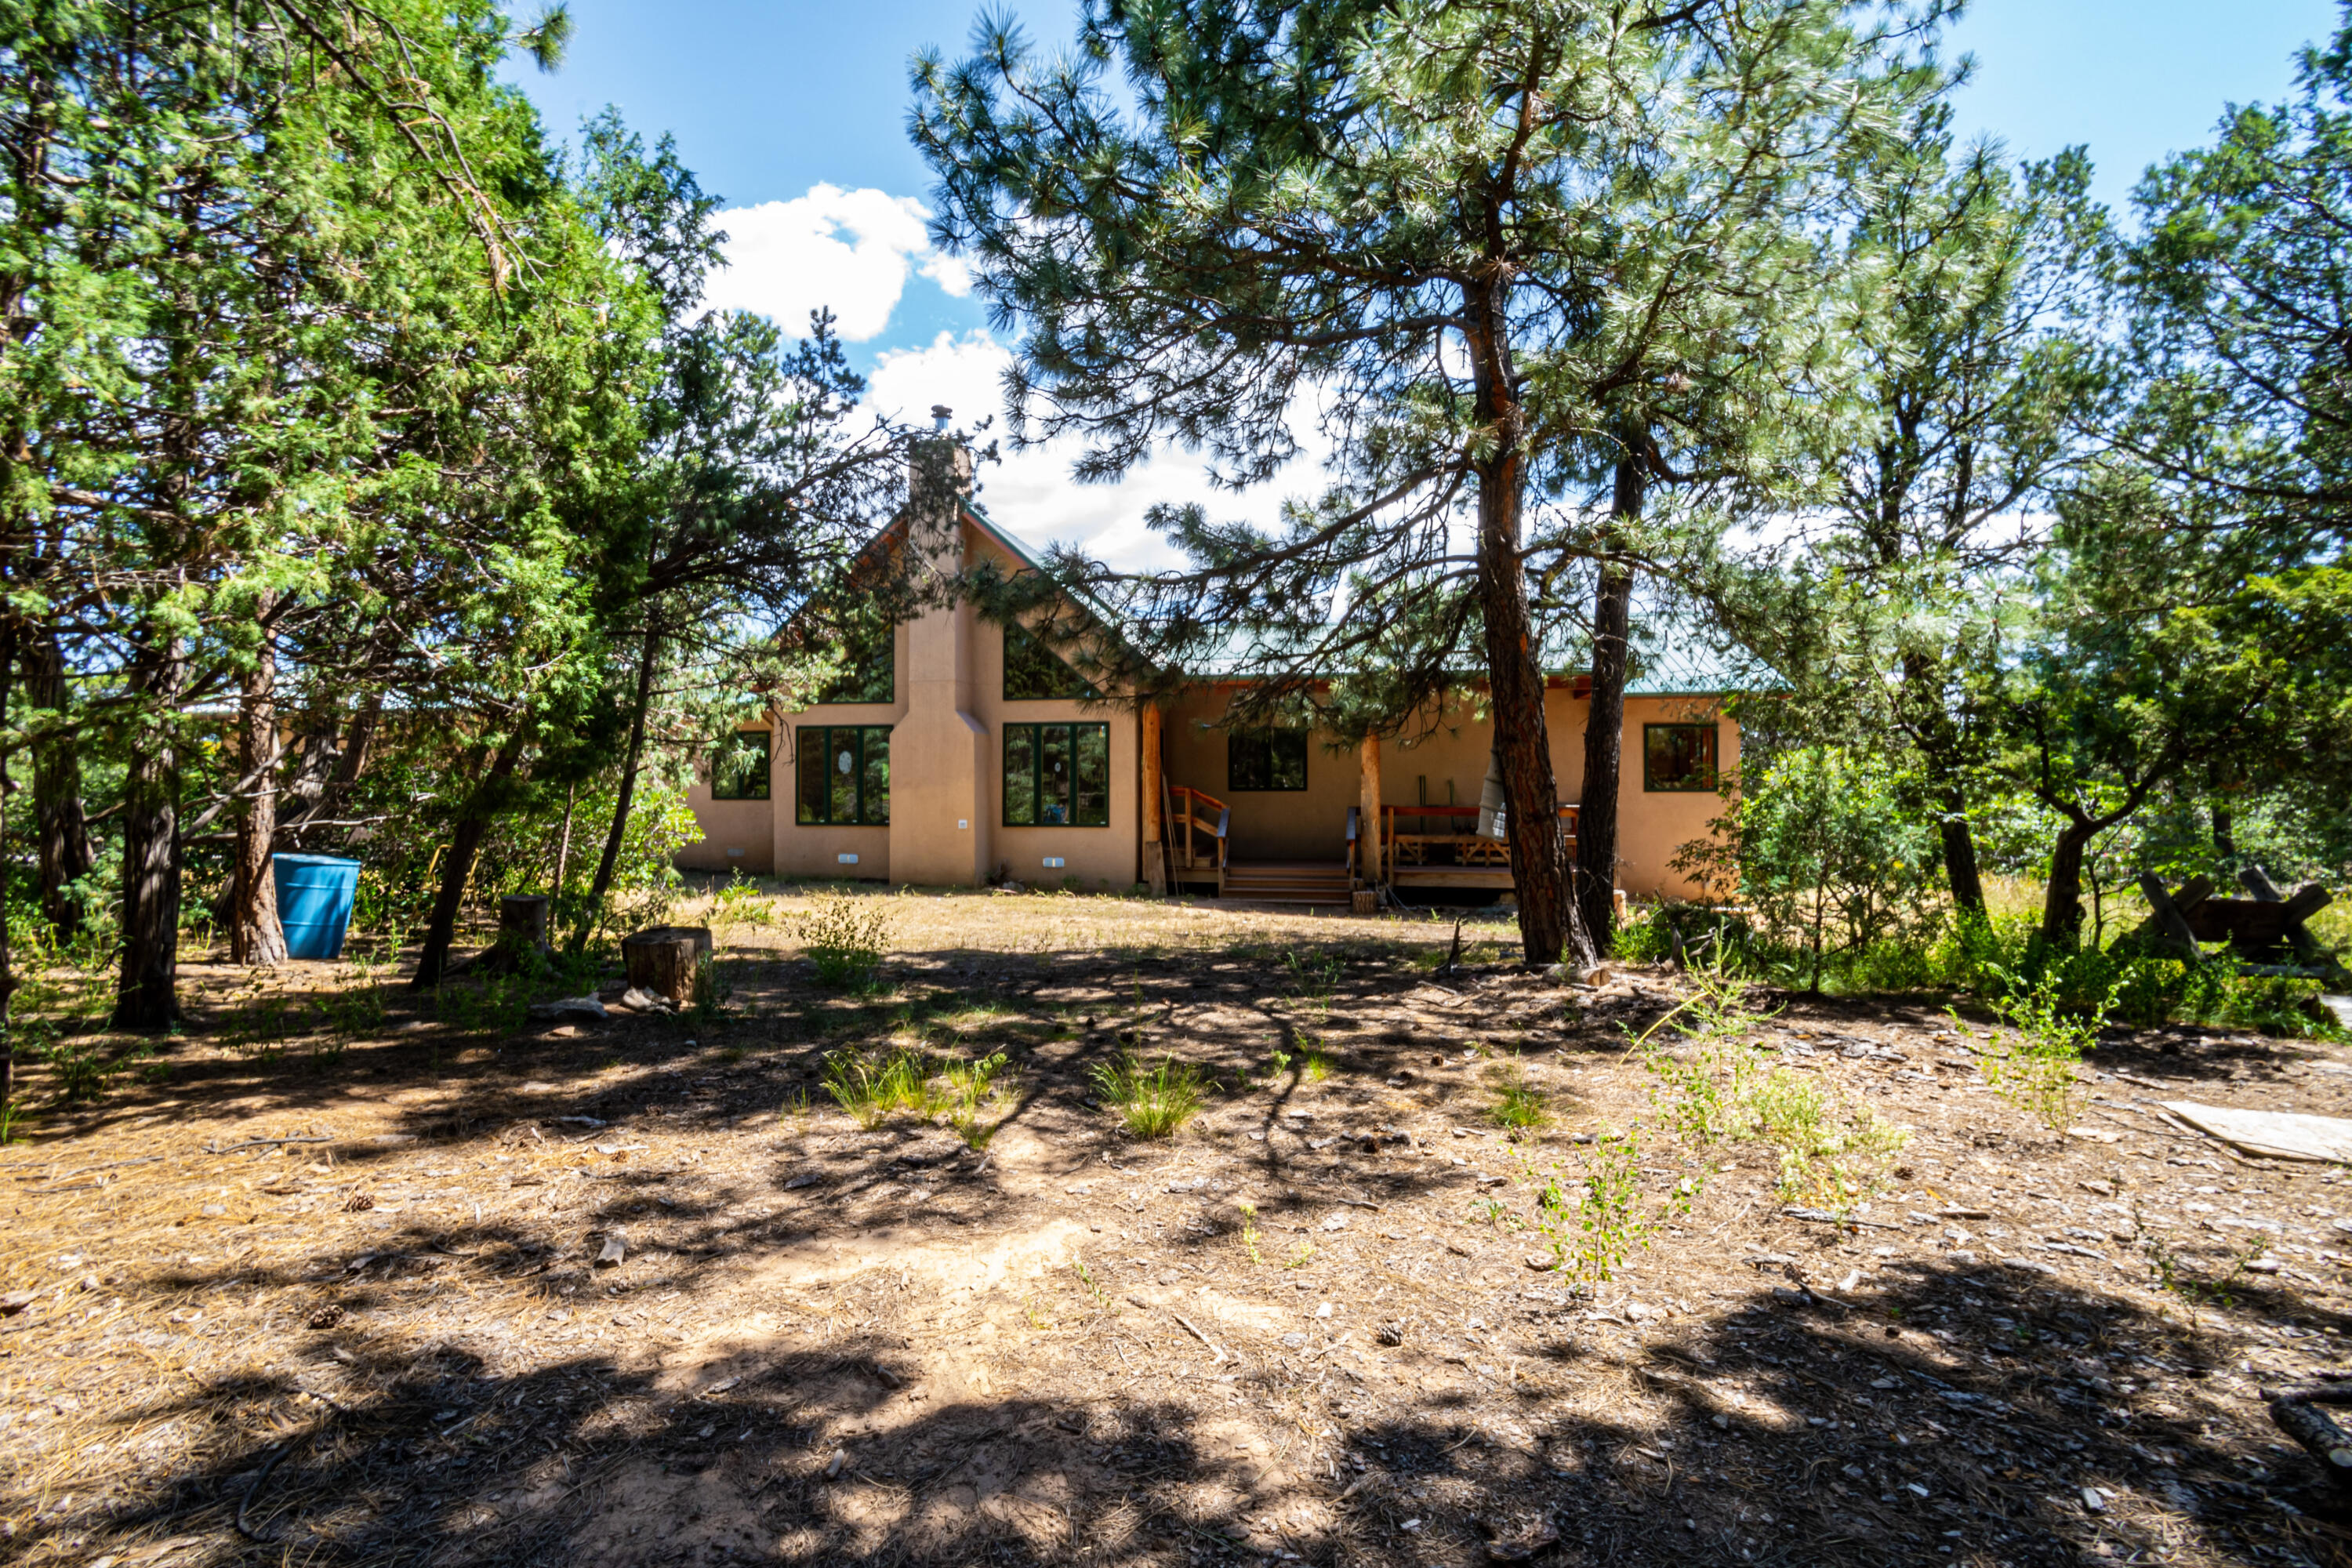 One of a kind Custom home nestled among the pines, gated community, lots of natural light, granite counter tops, central vac, custom fireplace to keep you warm on those cold nights. Great deck to enjoy nature views. Custom cabinetry throughout, 2 large closets in master, one is lined with Cedar, slate tile and hardwood floors throughout. Price to sell quickly, don't miss this beauty.Property has a well that is currently dry. Seller has water hauled in.